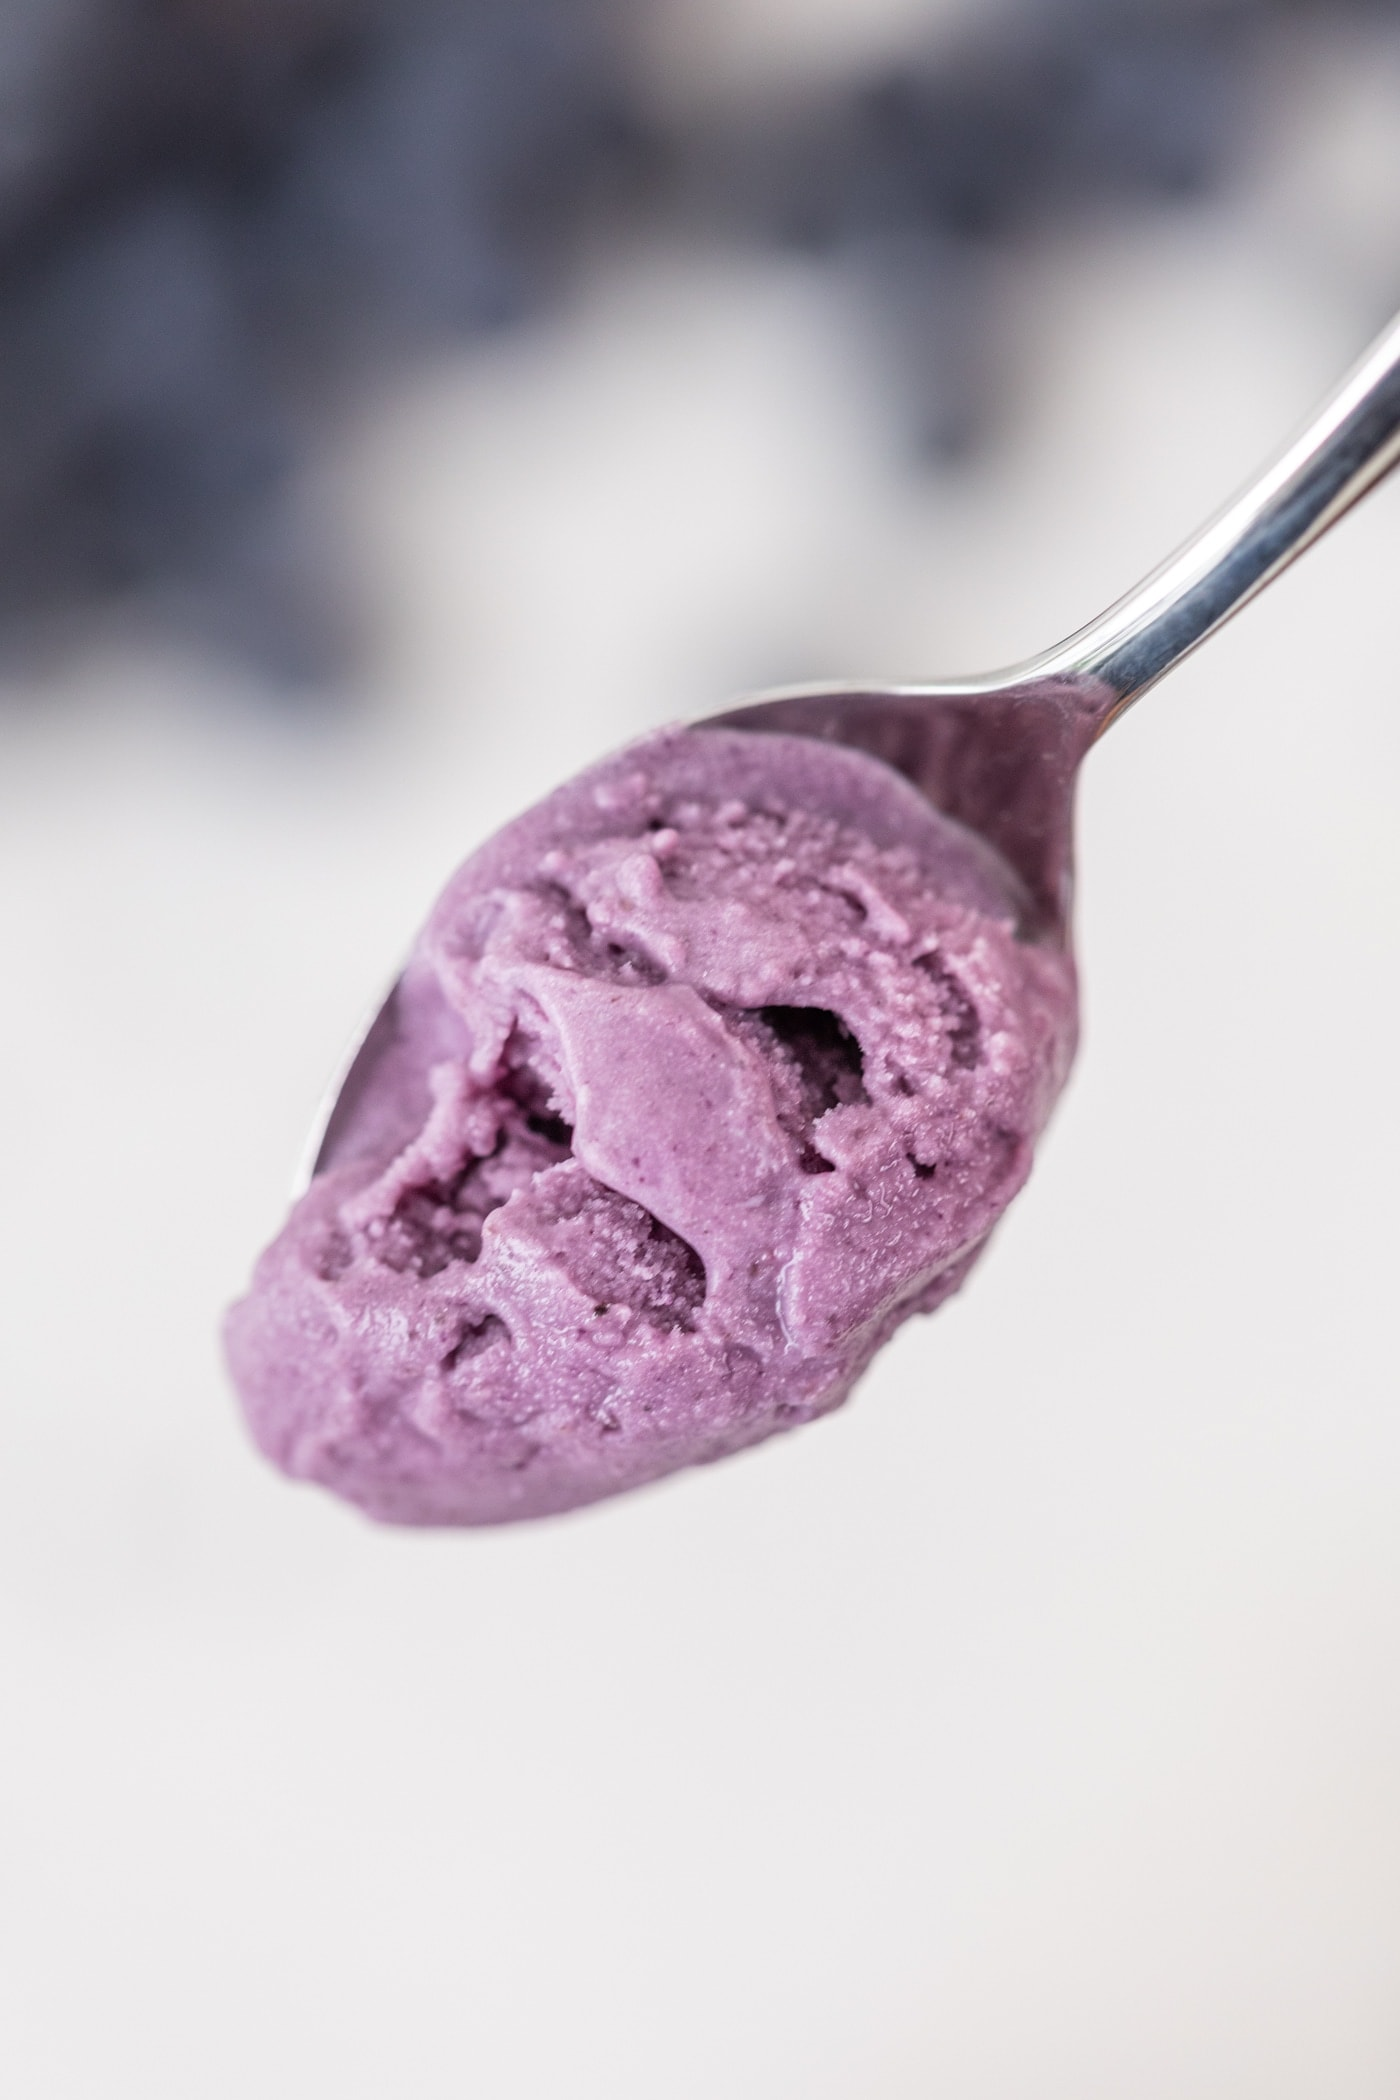 Spoon full of blueberry lavender ice cream with blurry blueberries on marble surface in background